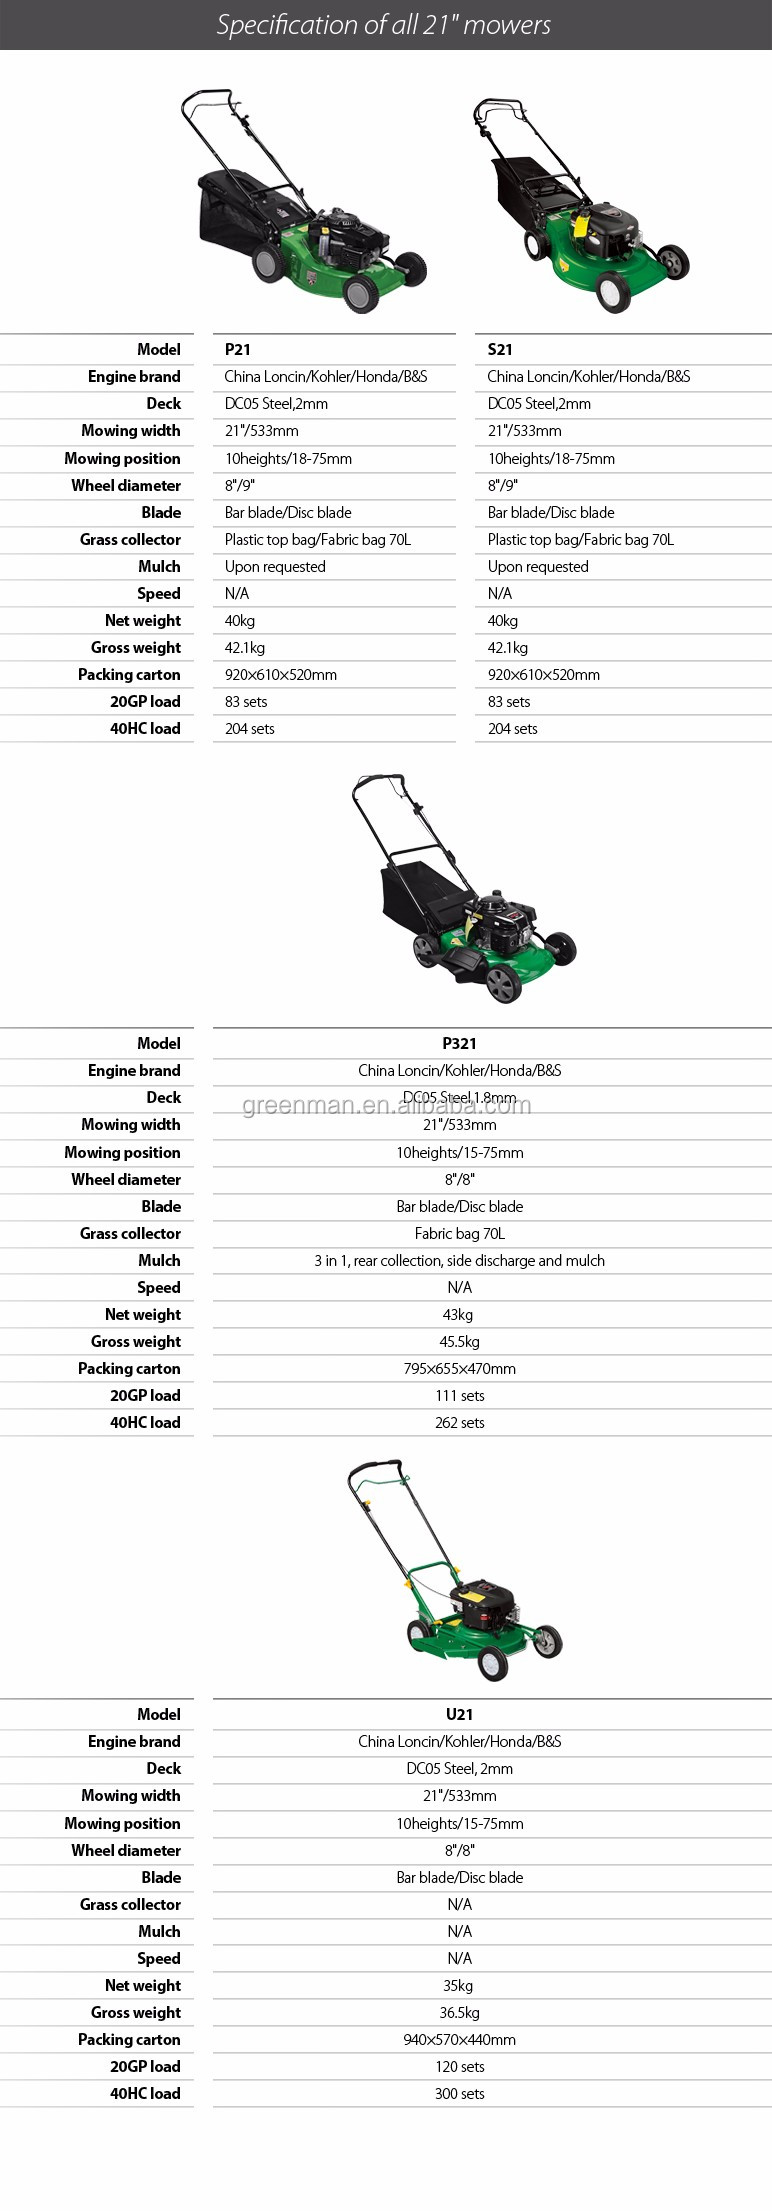 21 inch SELF-PROPELLED steel lawn mower with Loncin engine and 533mm cutting width